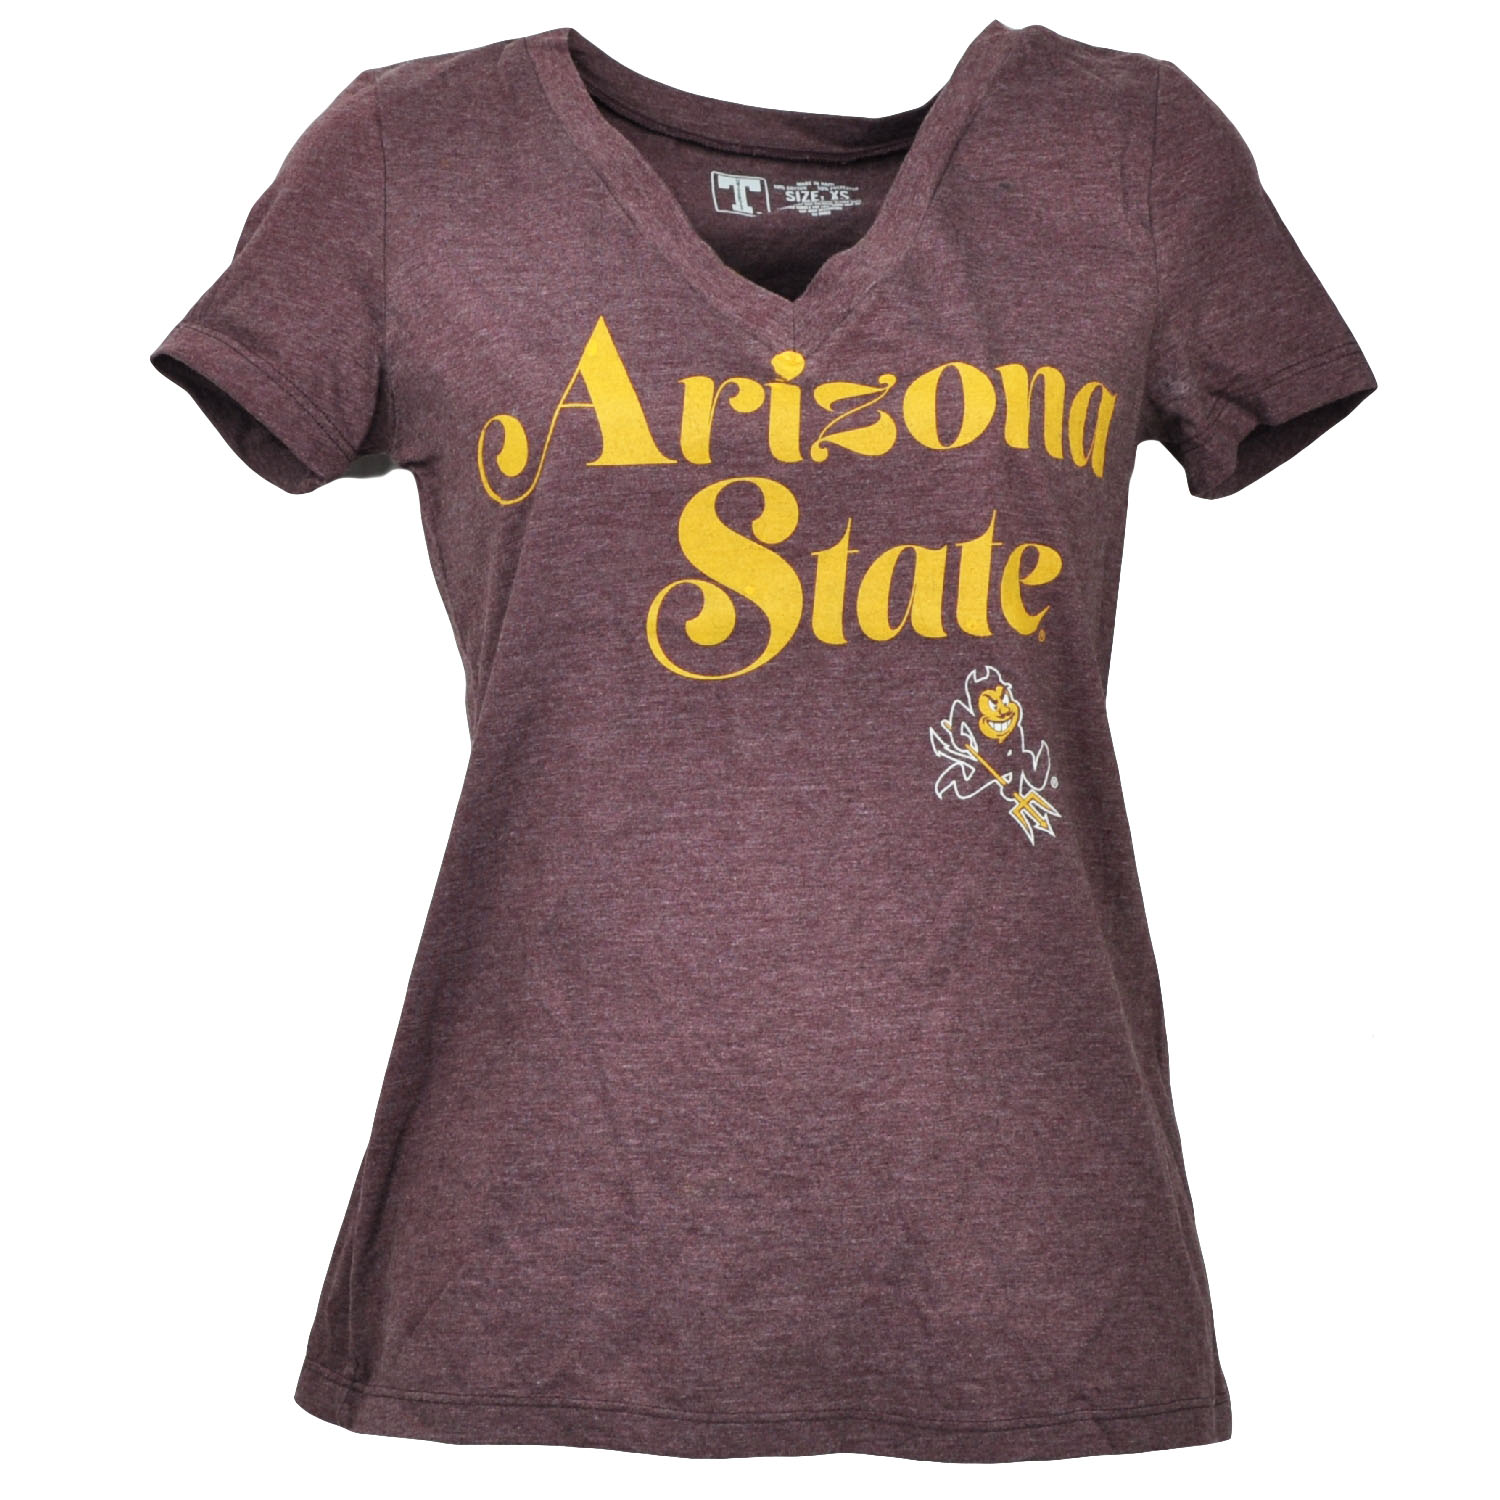 NCAA Arizona State Sun Devils V Neck Burgundy Tshirt Womens Short Sleeve Medium